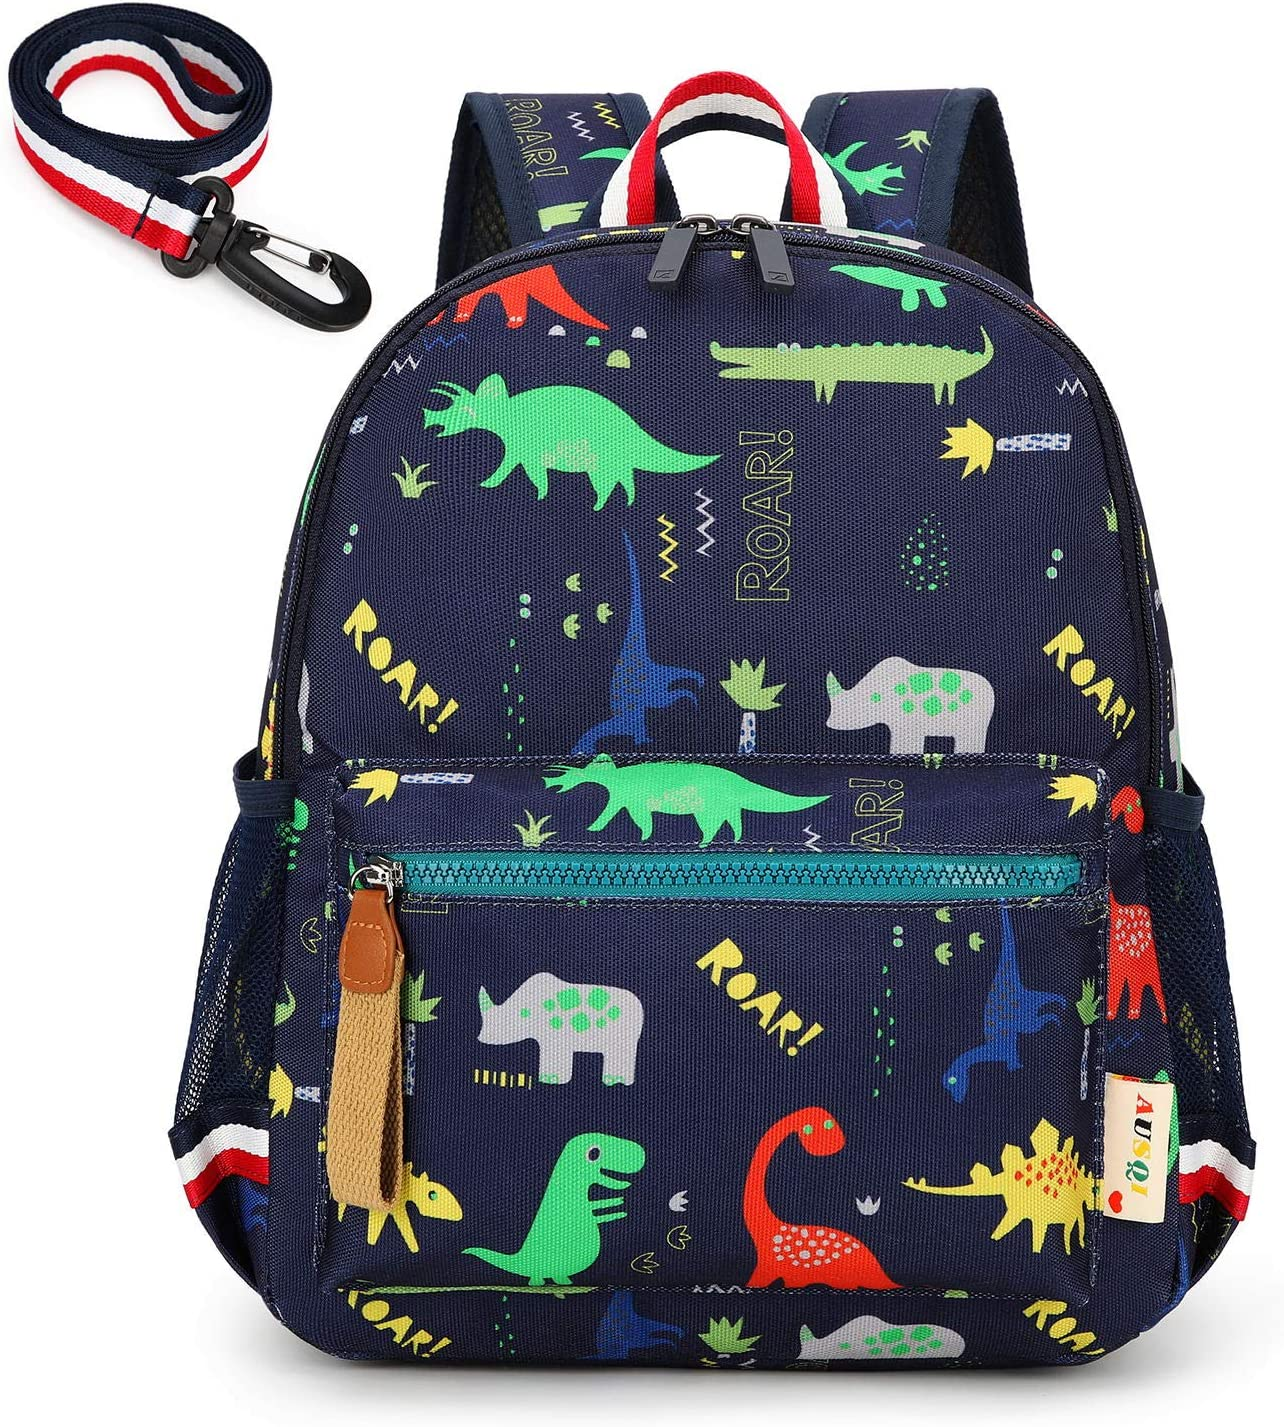 willikiva Cartoon Bus 12 Kindergarten Backpack for Kids Girls and Boys,Waterproof Preschool Toddler Backpack Wiht Leash and Safety Harness(Blue)